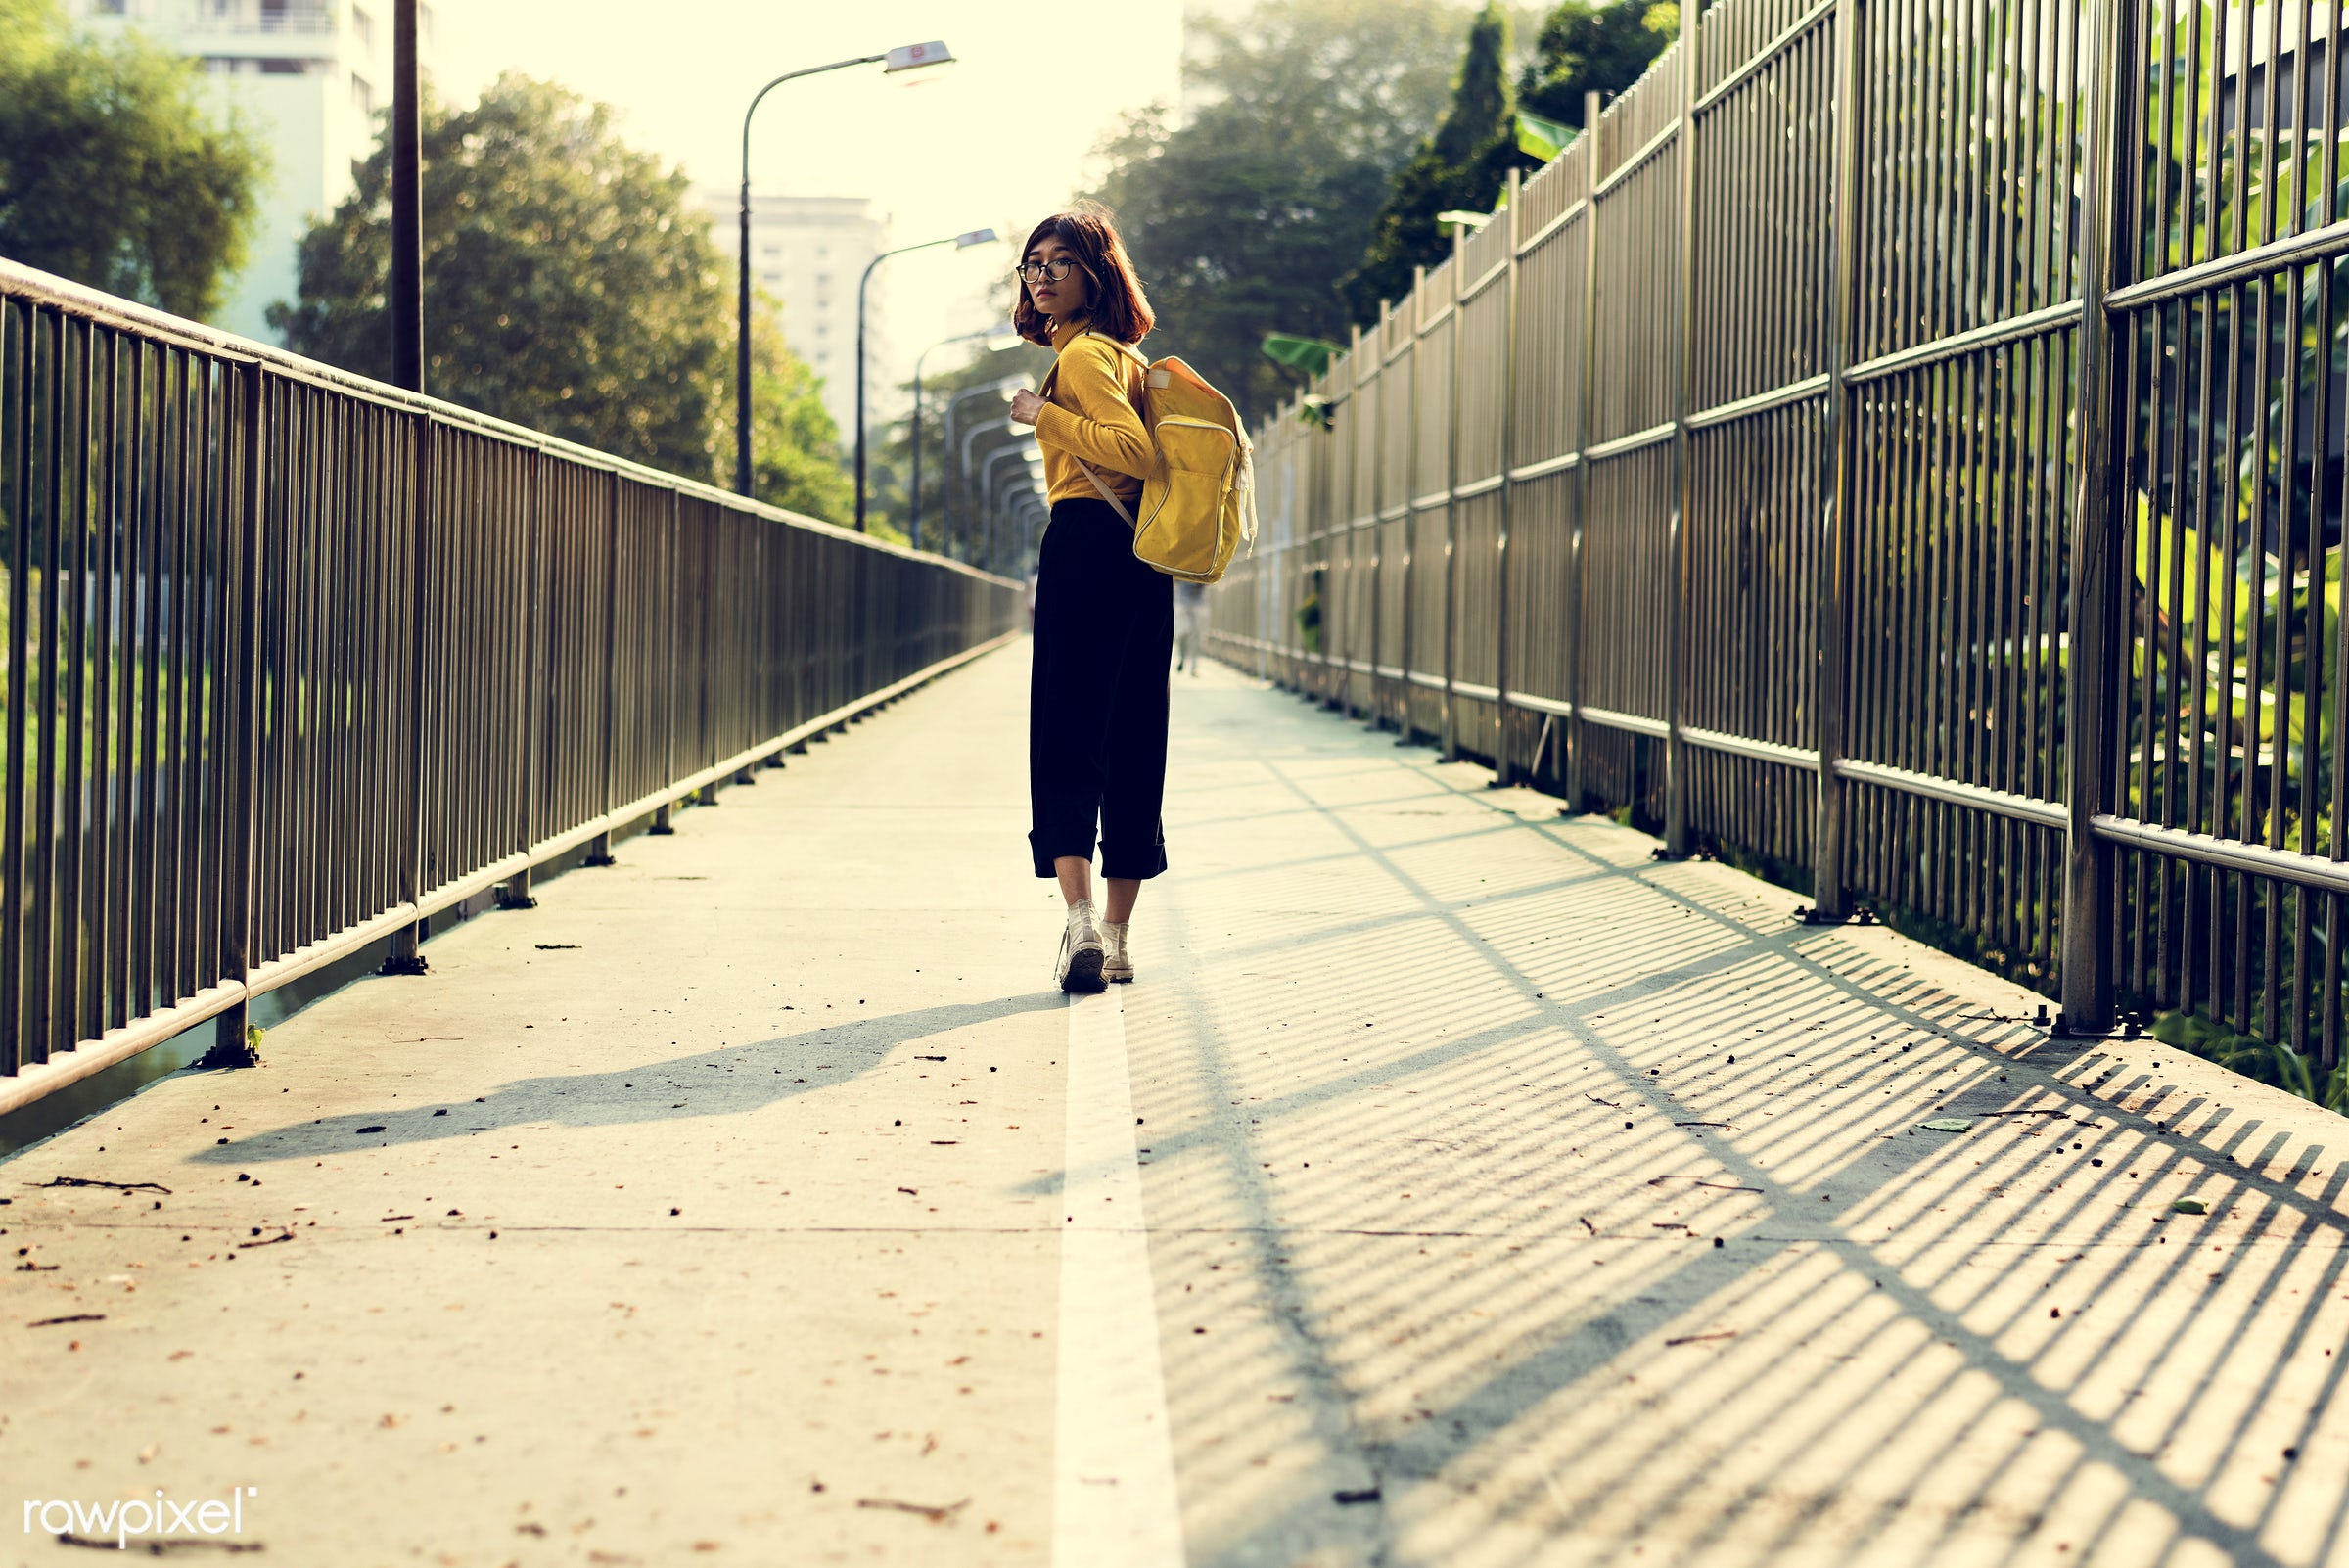 woman, girl, travel, trip, backpack, alone, solo, city, journey, bag, asian, walking, rear view, person